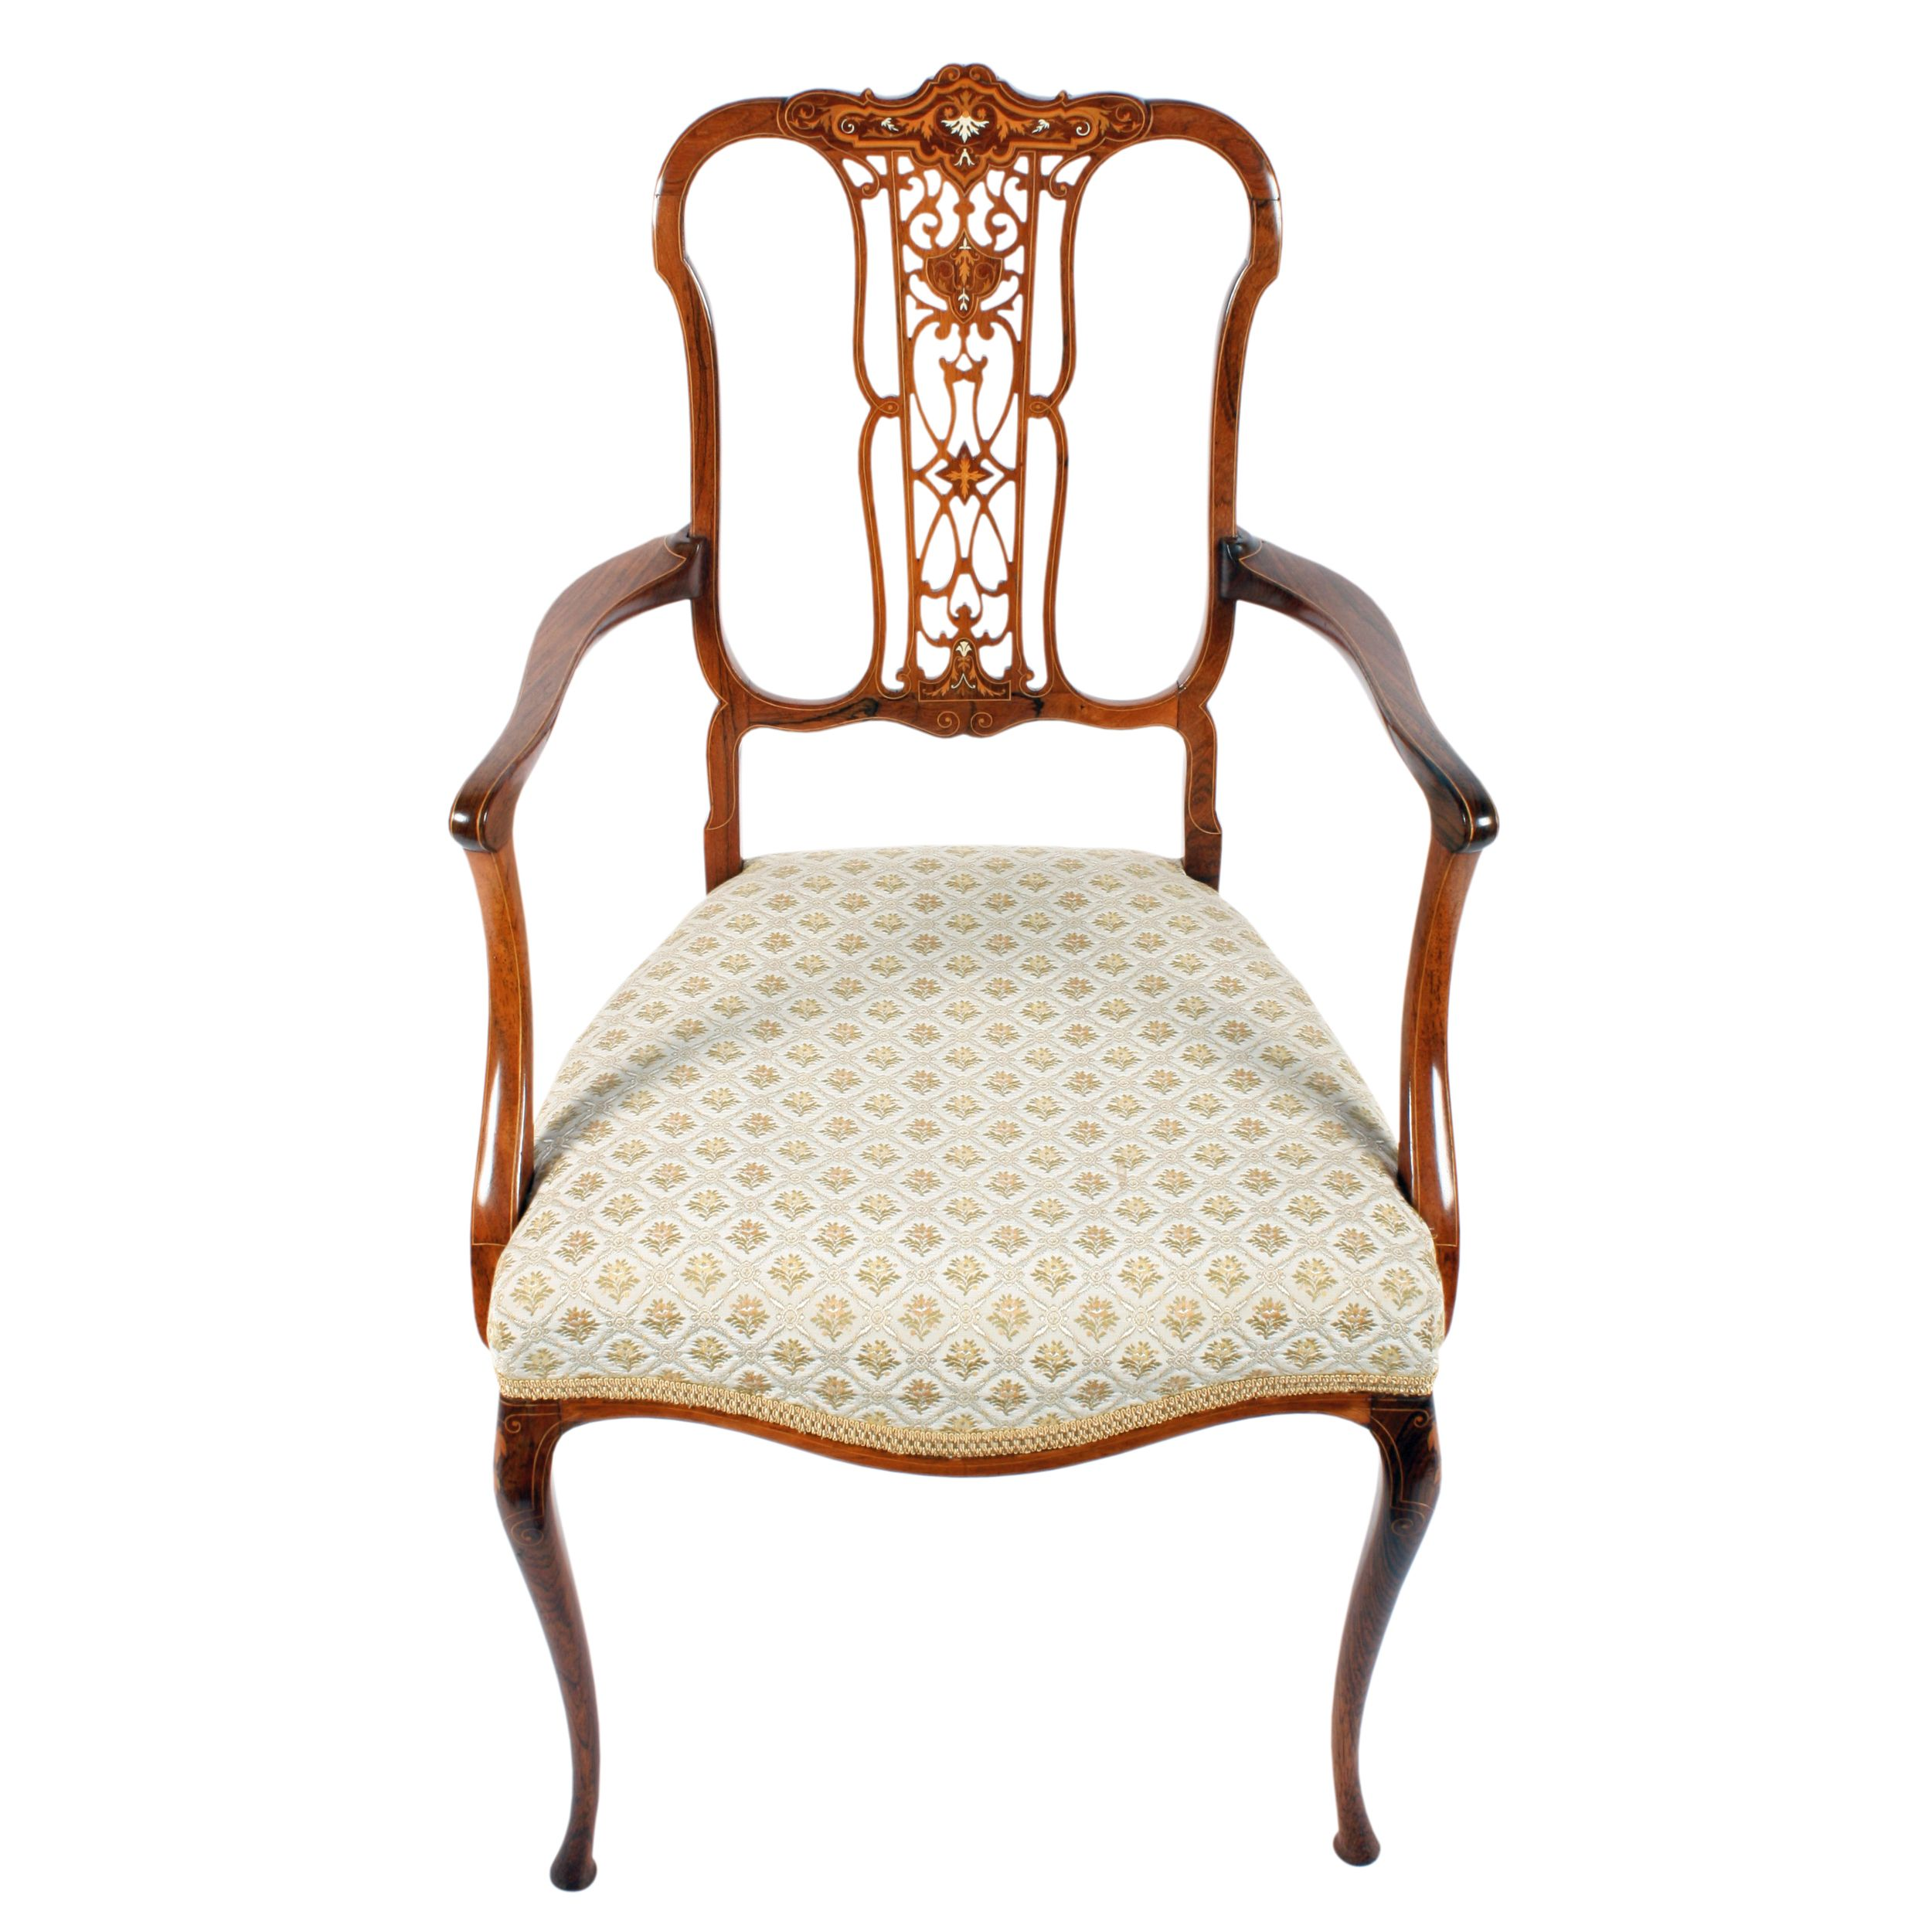 Victorian Rosewood Arm Chair Antique bedroom furniture